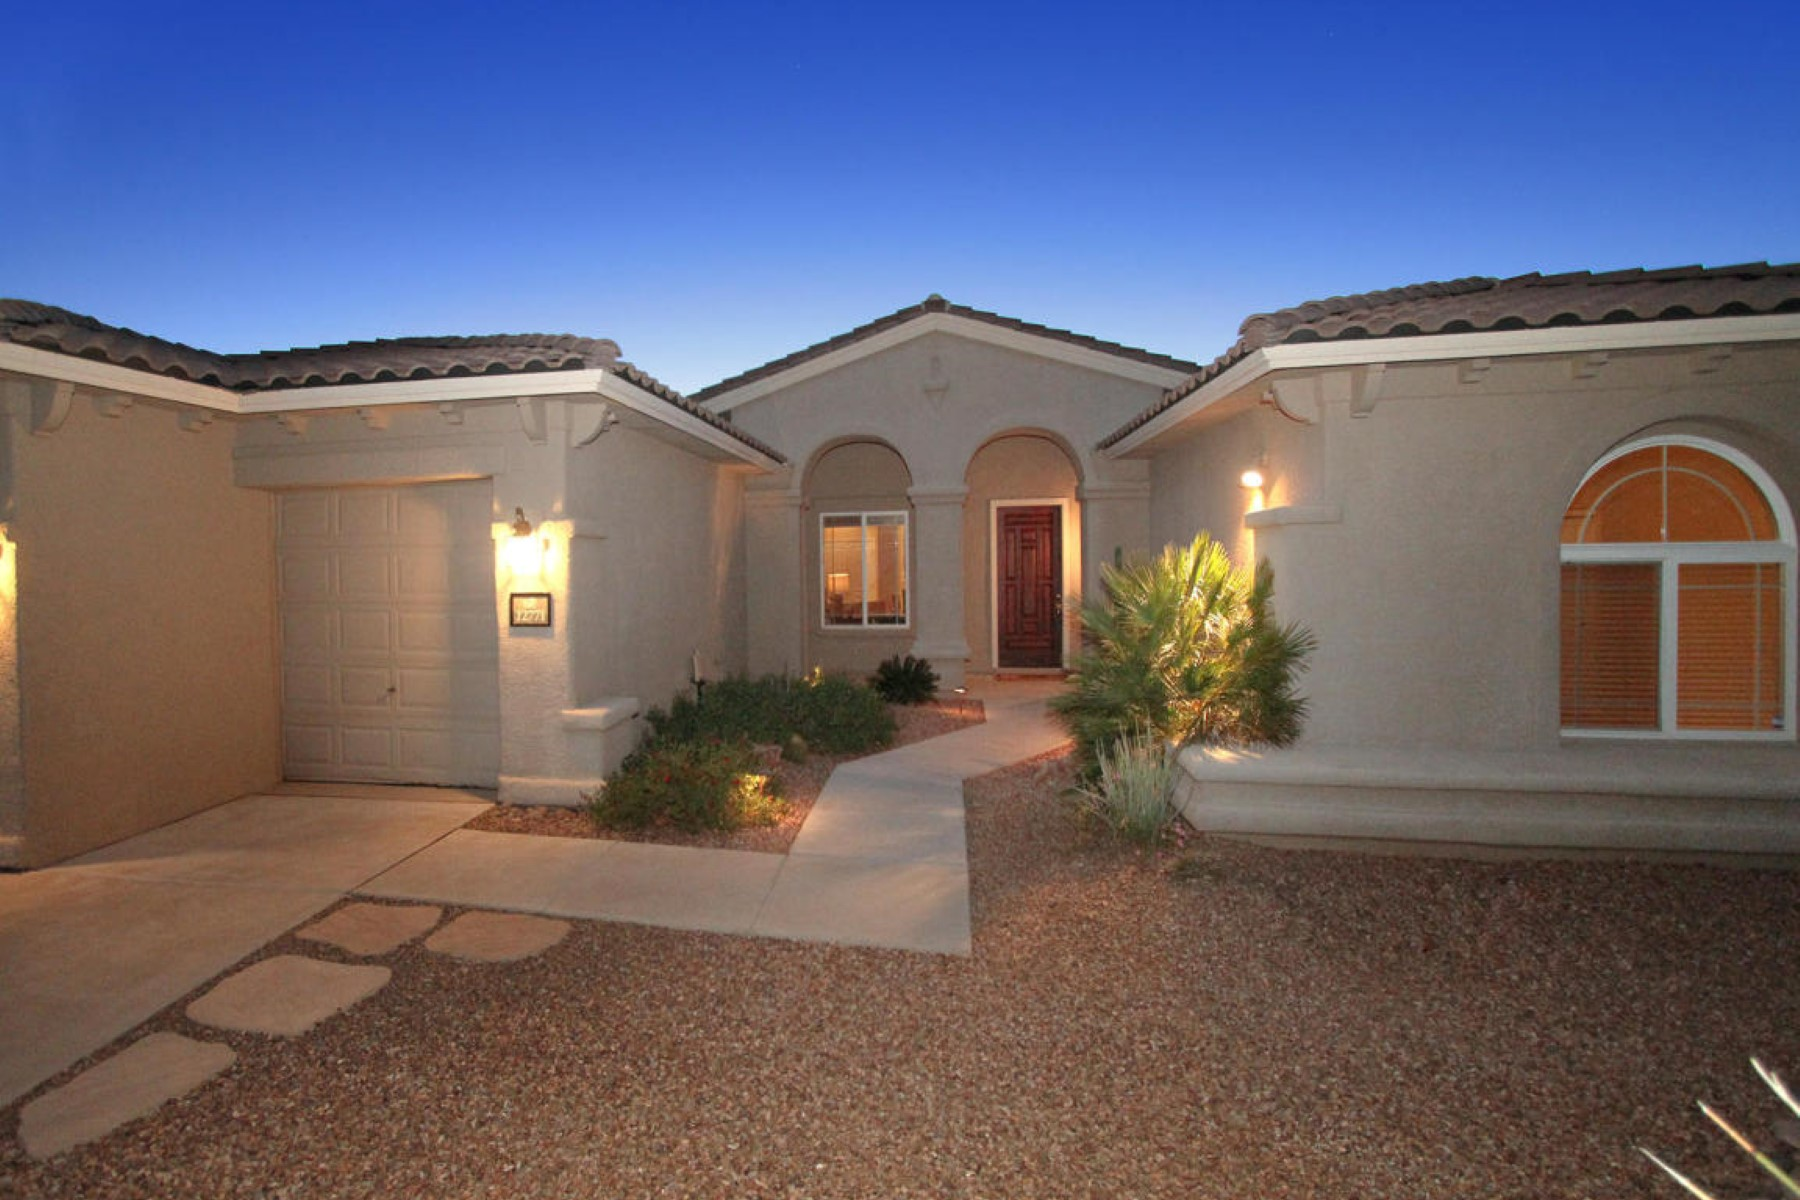 Single Family Home for Sale at Immaculate Oro Valley Home move-in ready 12771 N Morgan Ranch Road Oro Valley, Arizona, 85755 United States